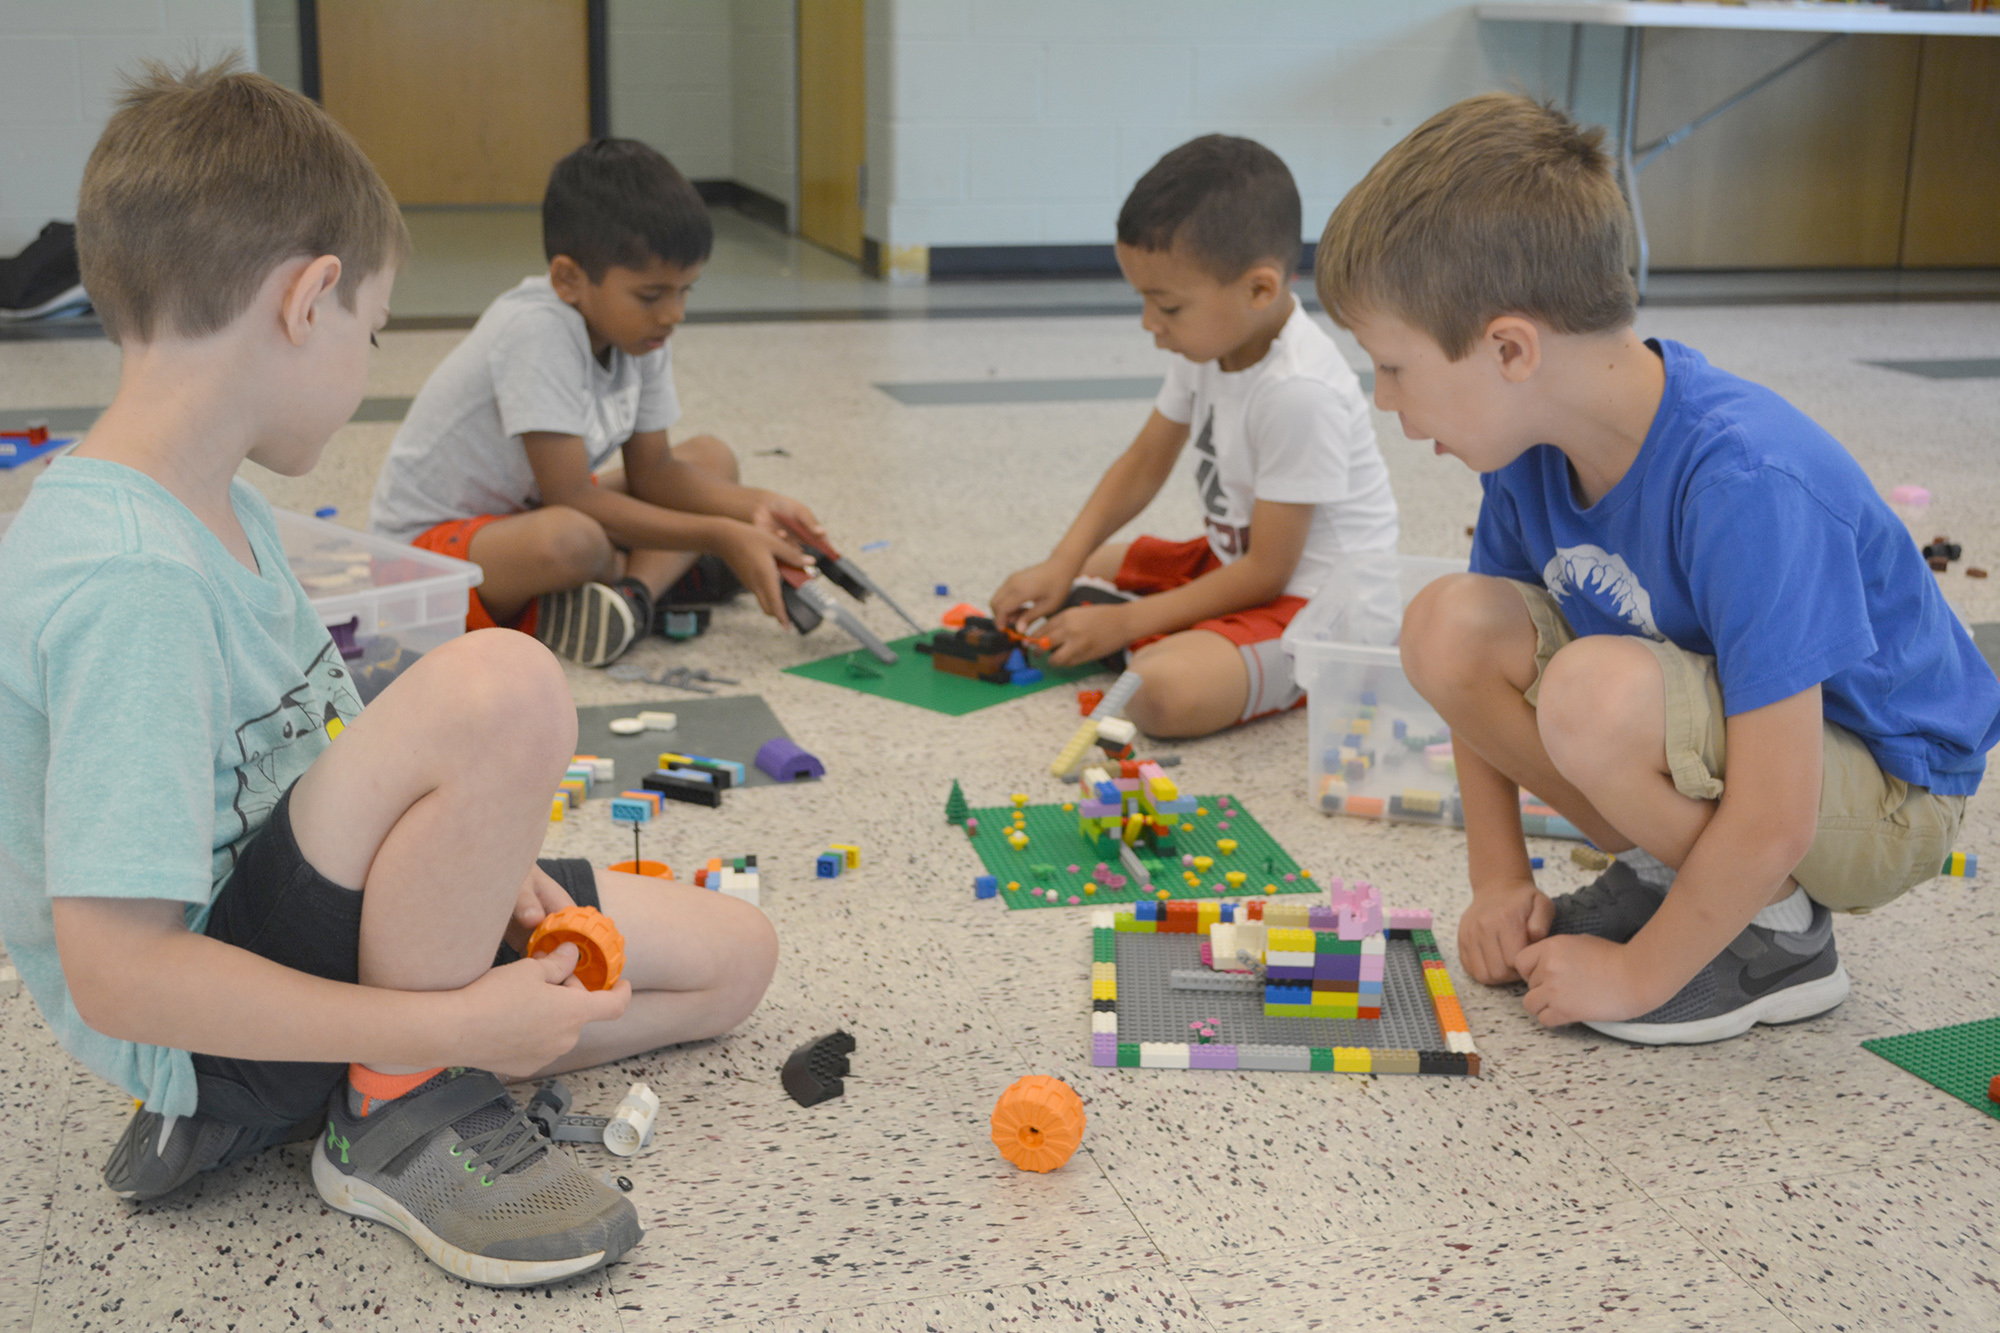 Register for the final LEGO Camp of the summer